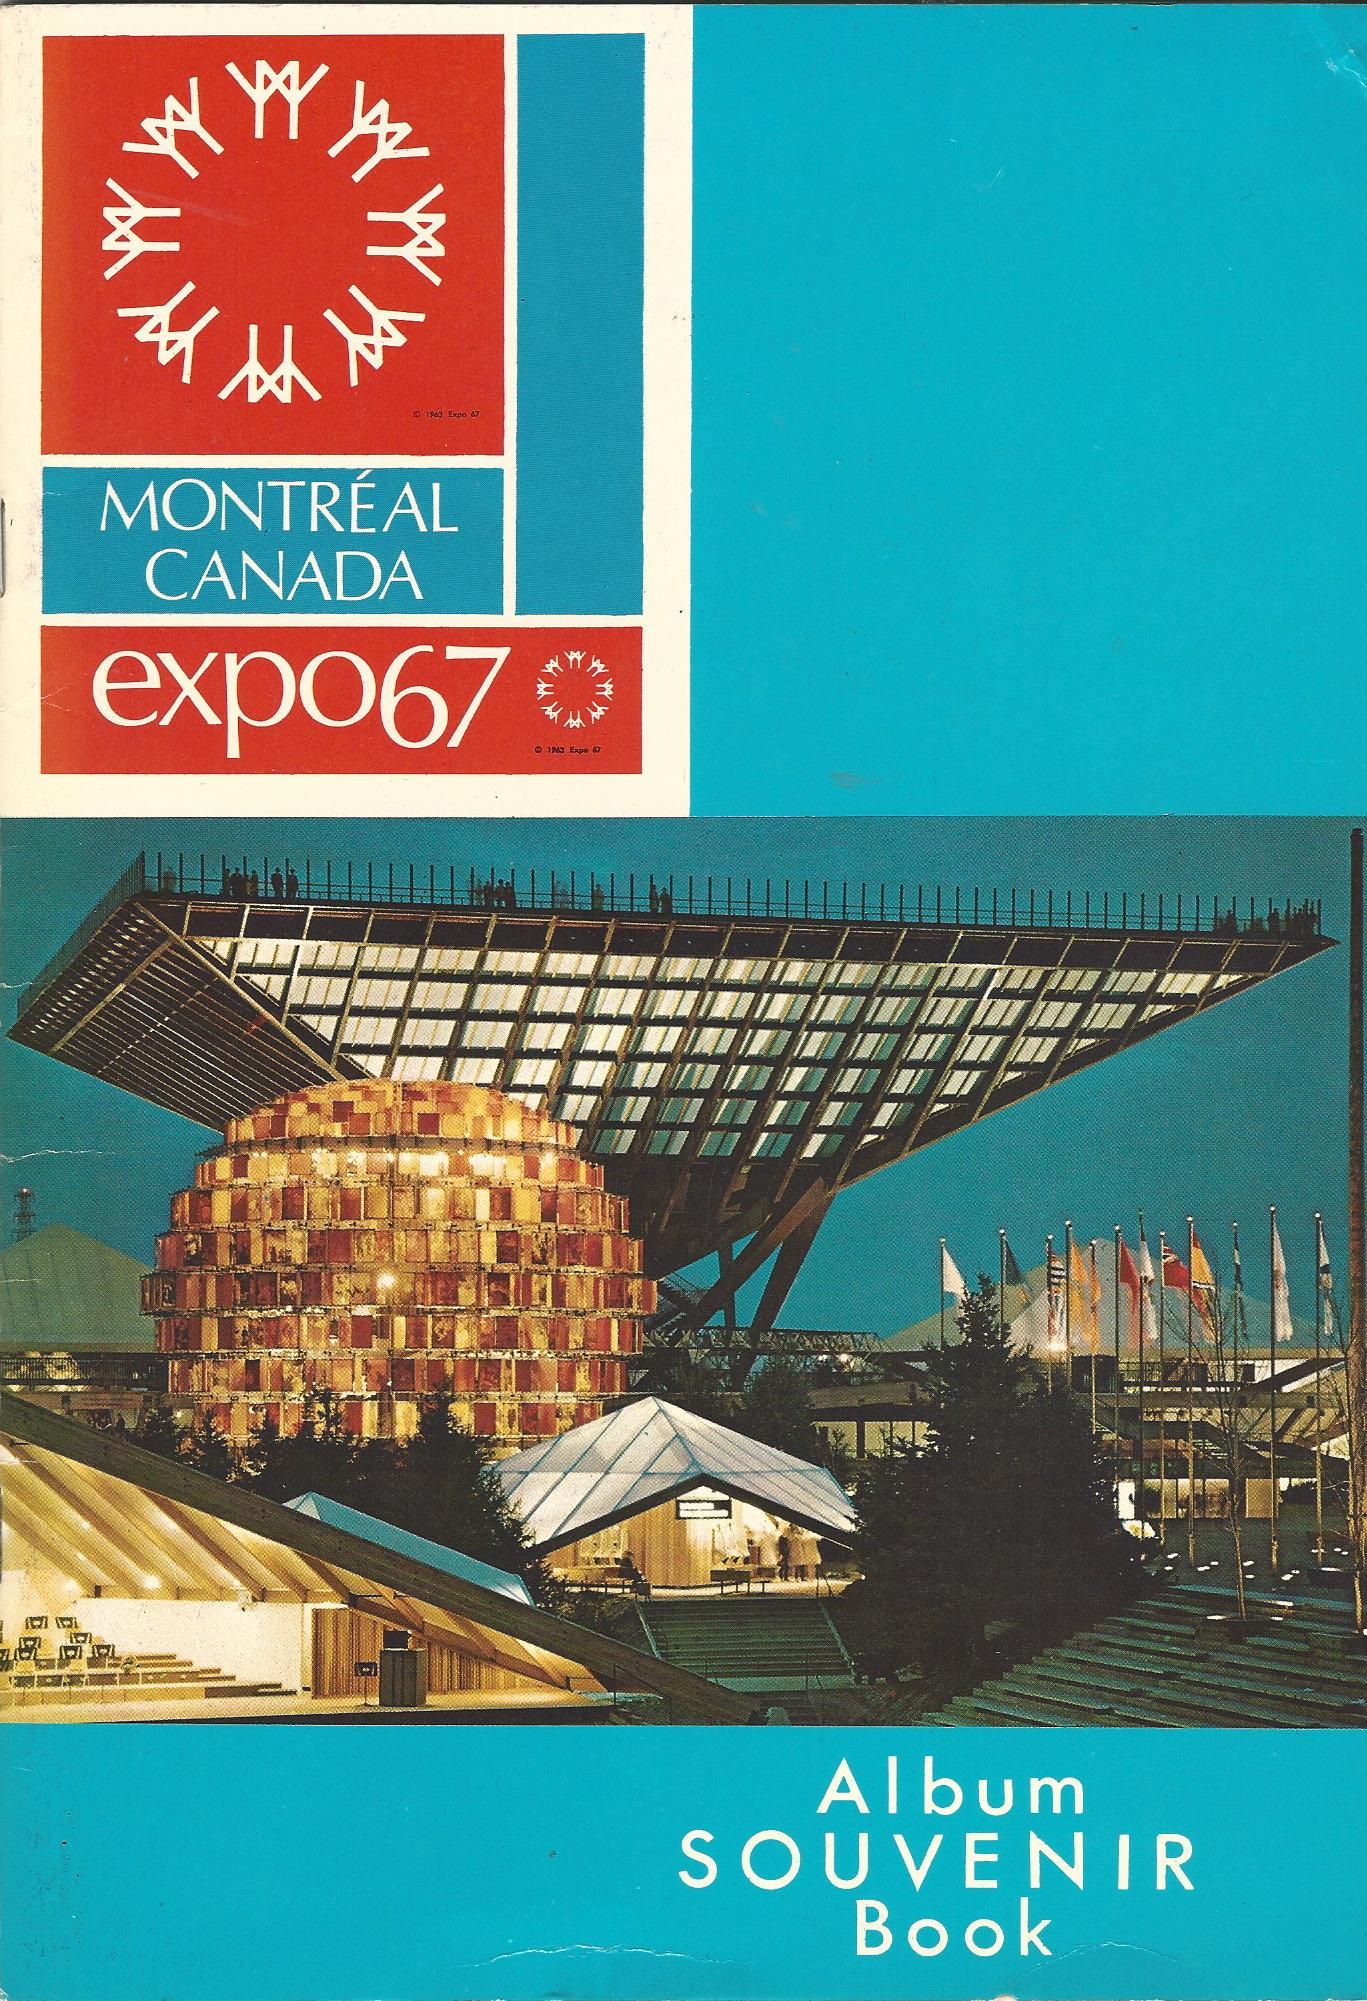 Image for Motreal Expo67 Album Souvenir Book